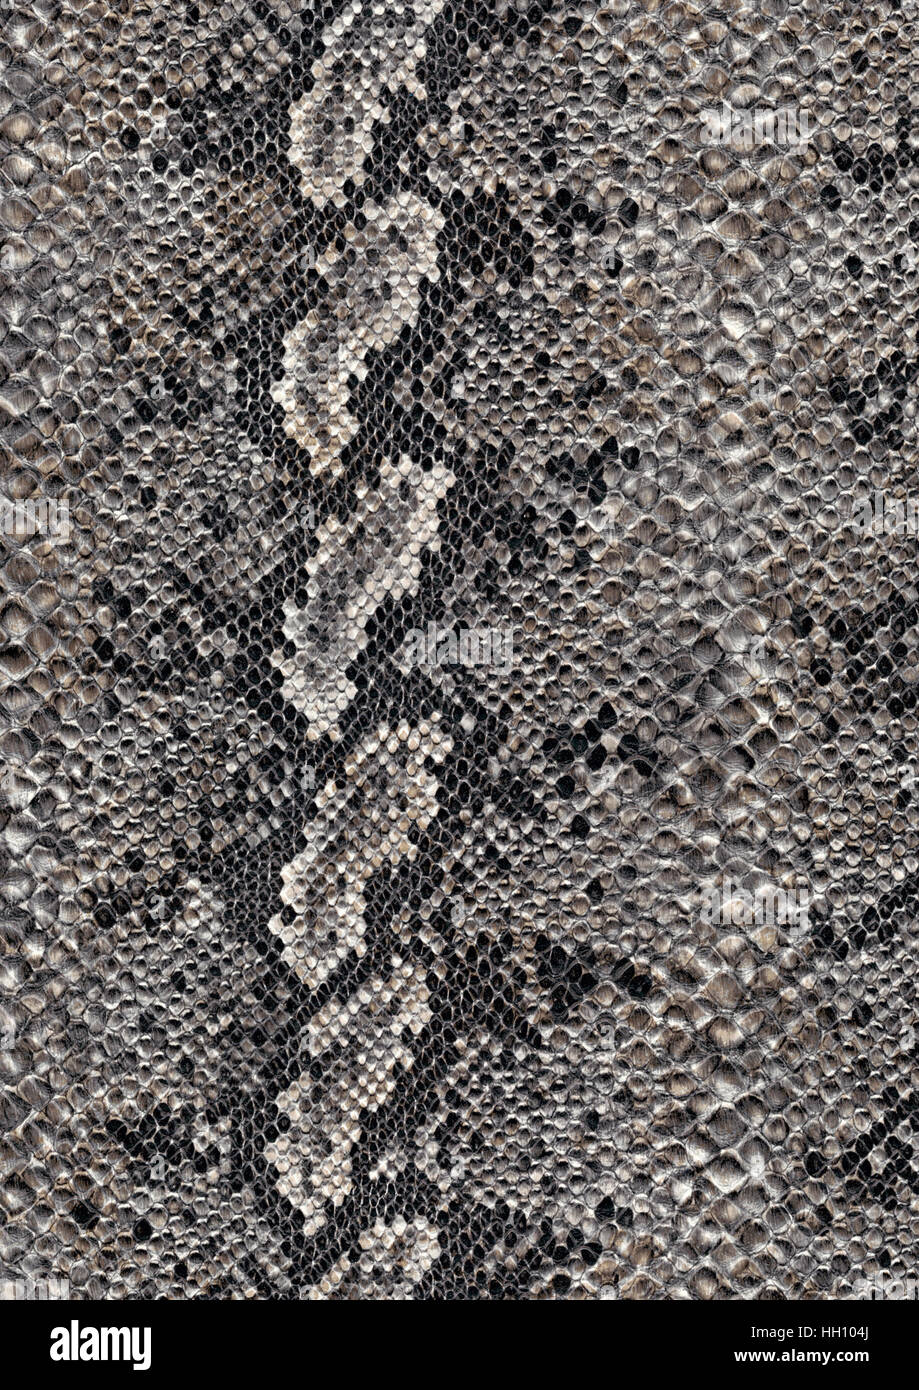 full frame scaled abstract grey patterned reptile skin surface - Stock Image